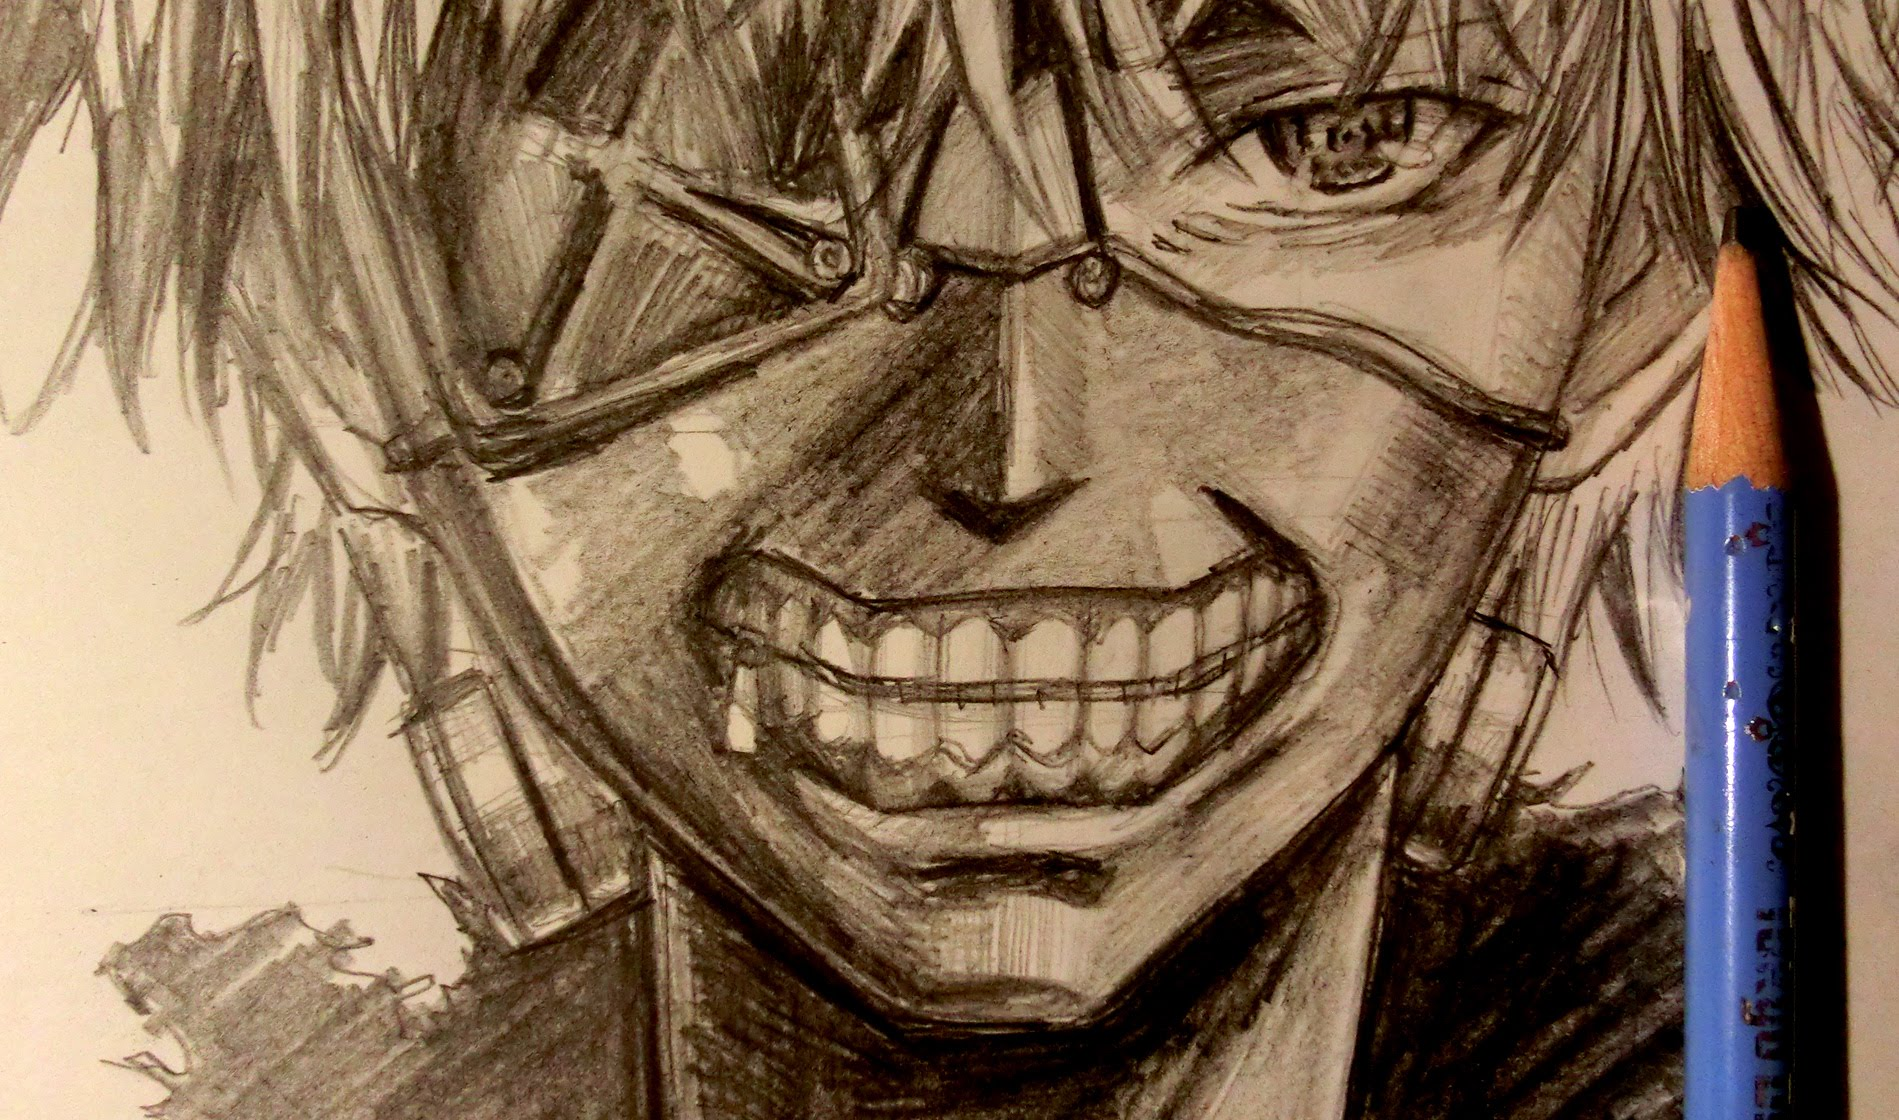 1899x1120 Asmr Pencil Drawing 11 Tokyo Ghoul (Request)